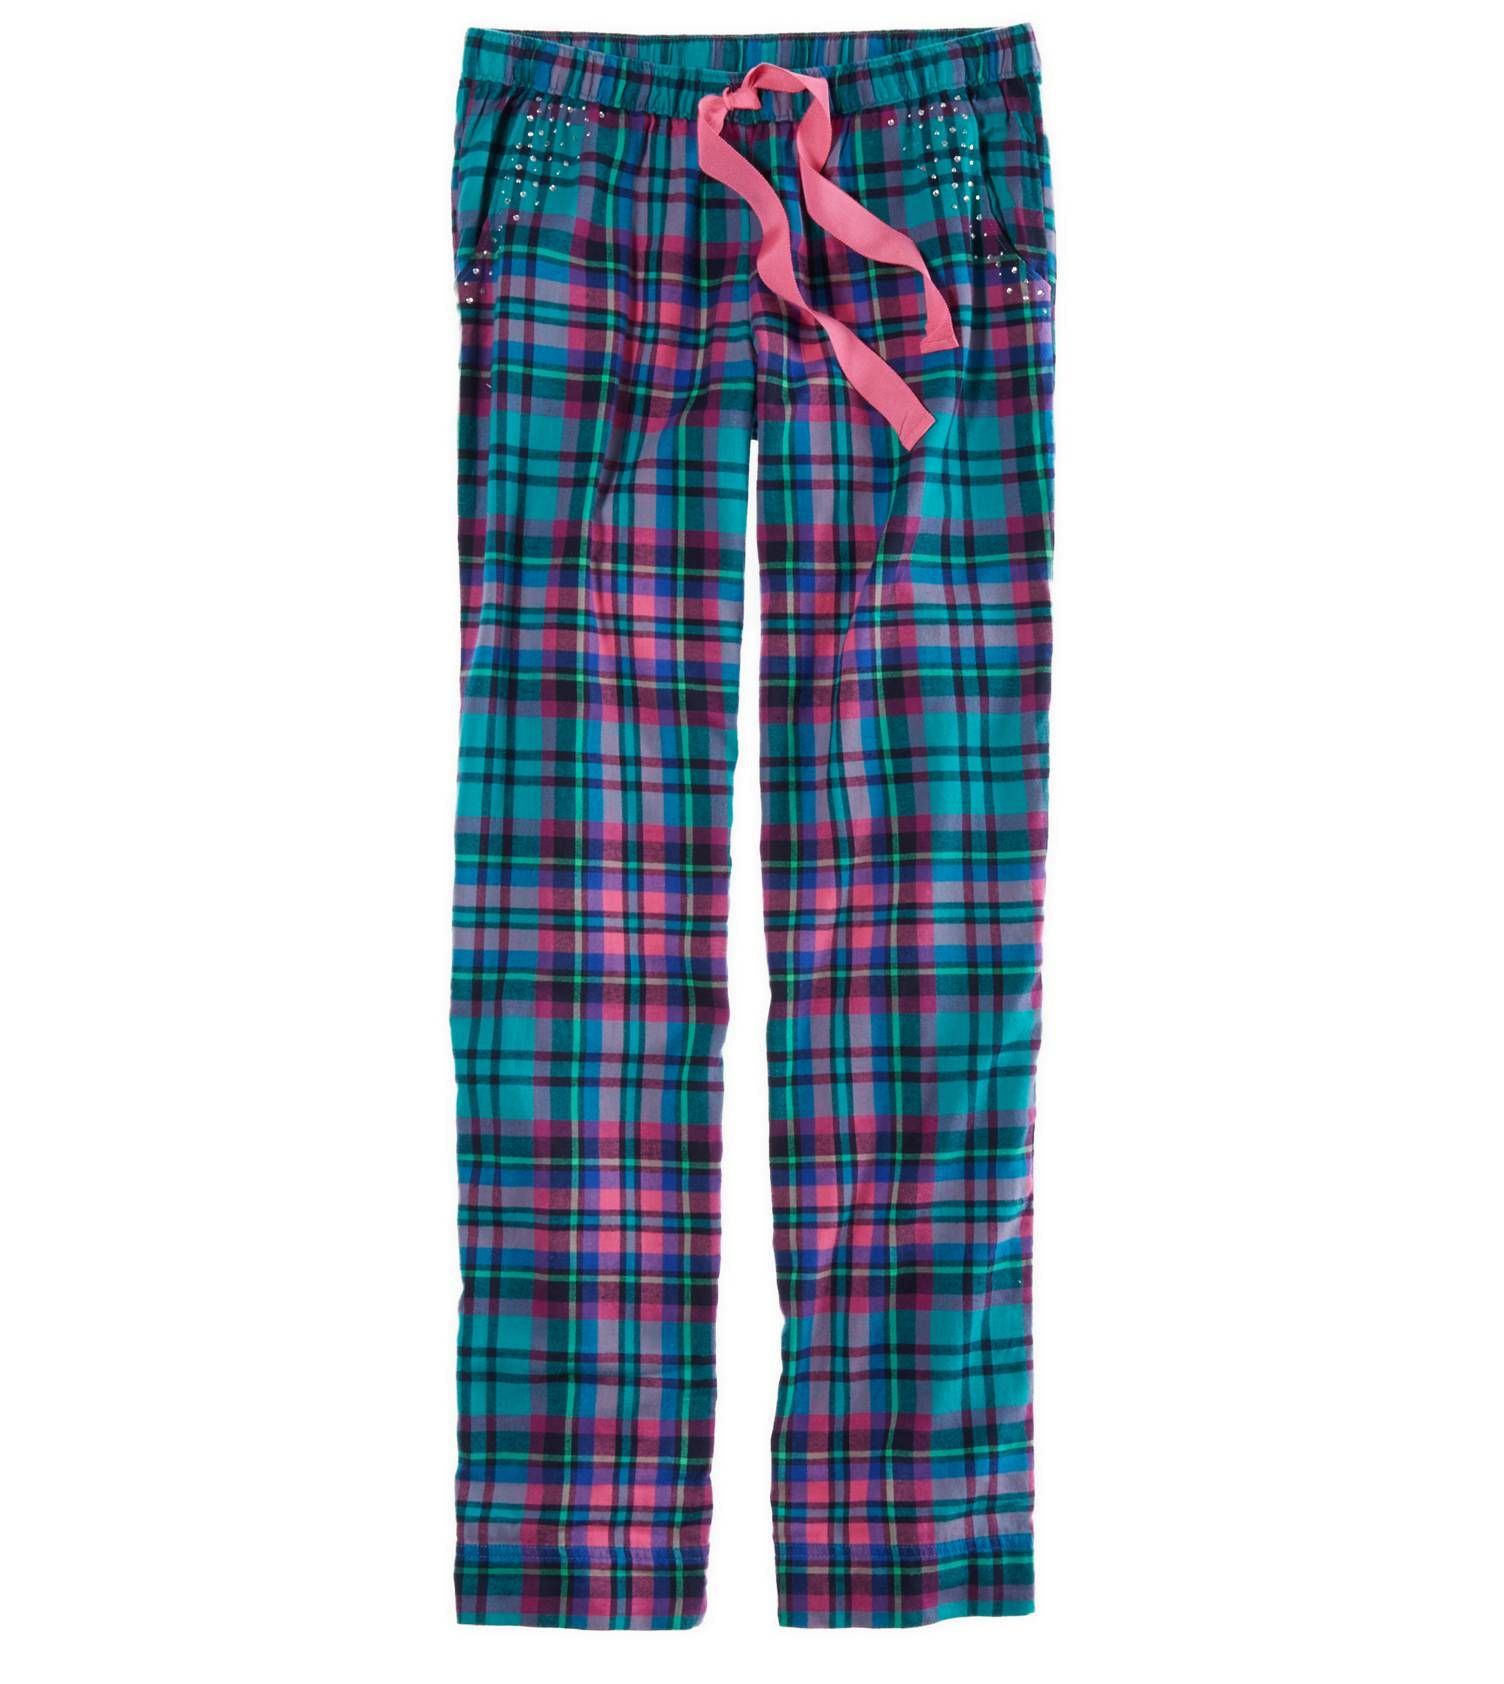 Blue /& Green Plaid Flannel Graphic Sleep Lounge Pants